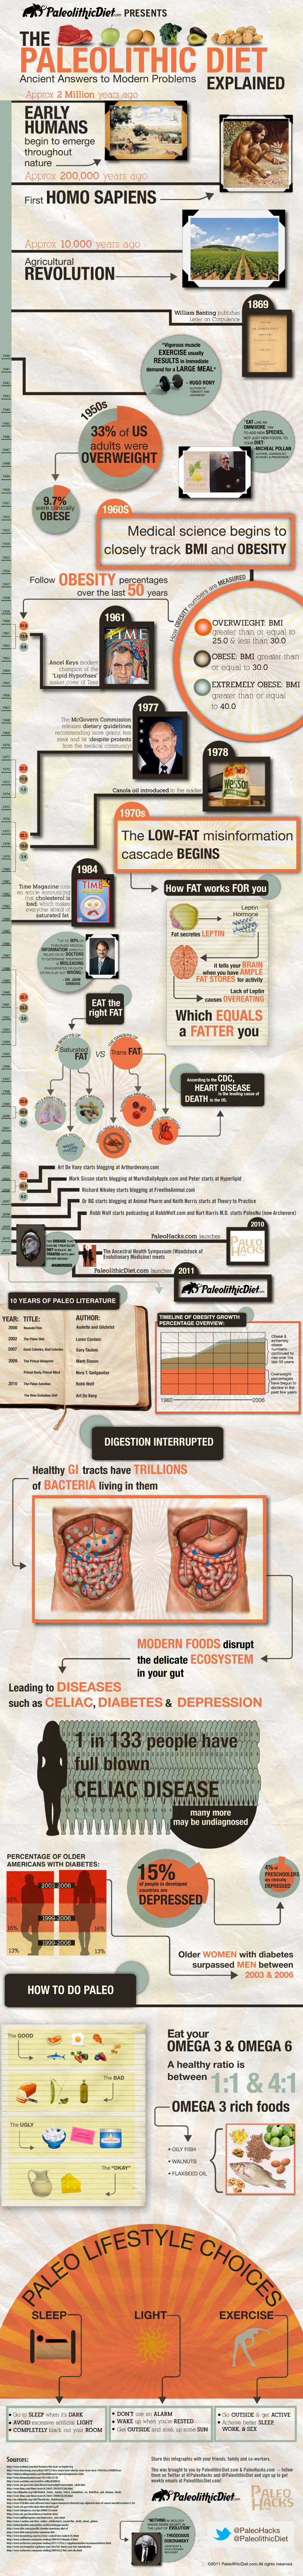 Paleolithic Diet Explained Infographic